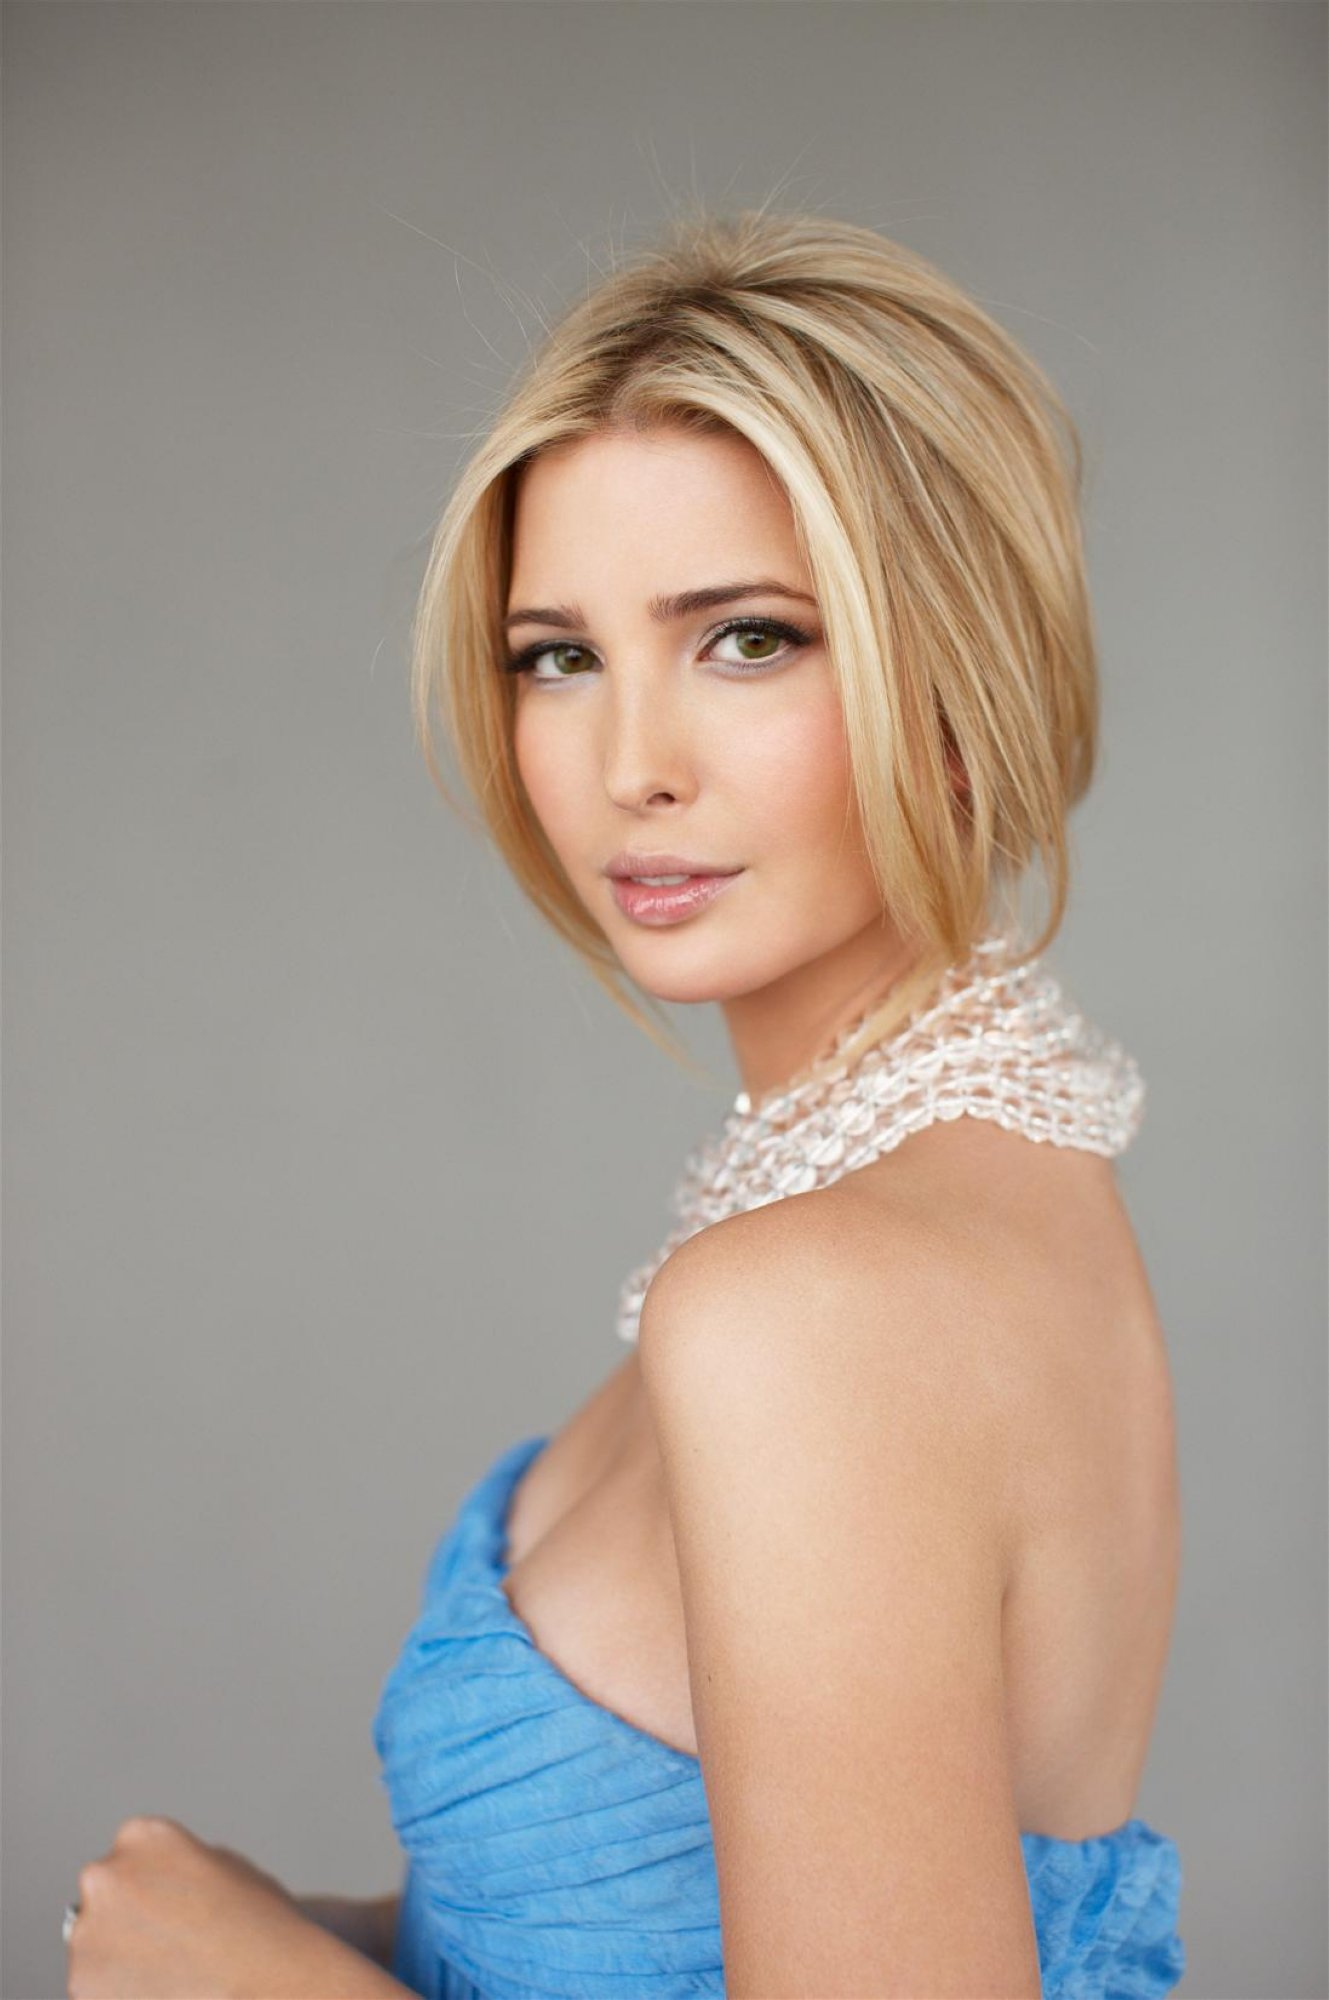 Photo Of Ivanka Trump 176114 Upload Date 2009 08 10 Number Votes 5 There Are 354 More Pics In The Gallery